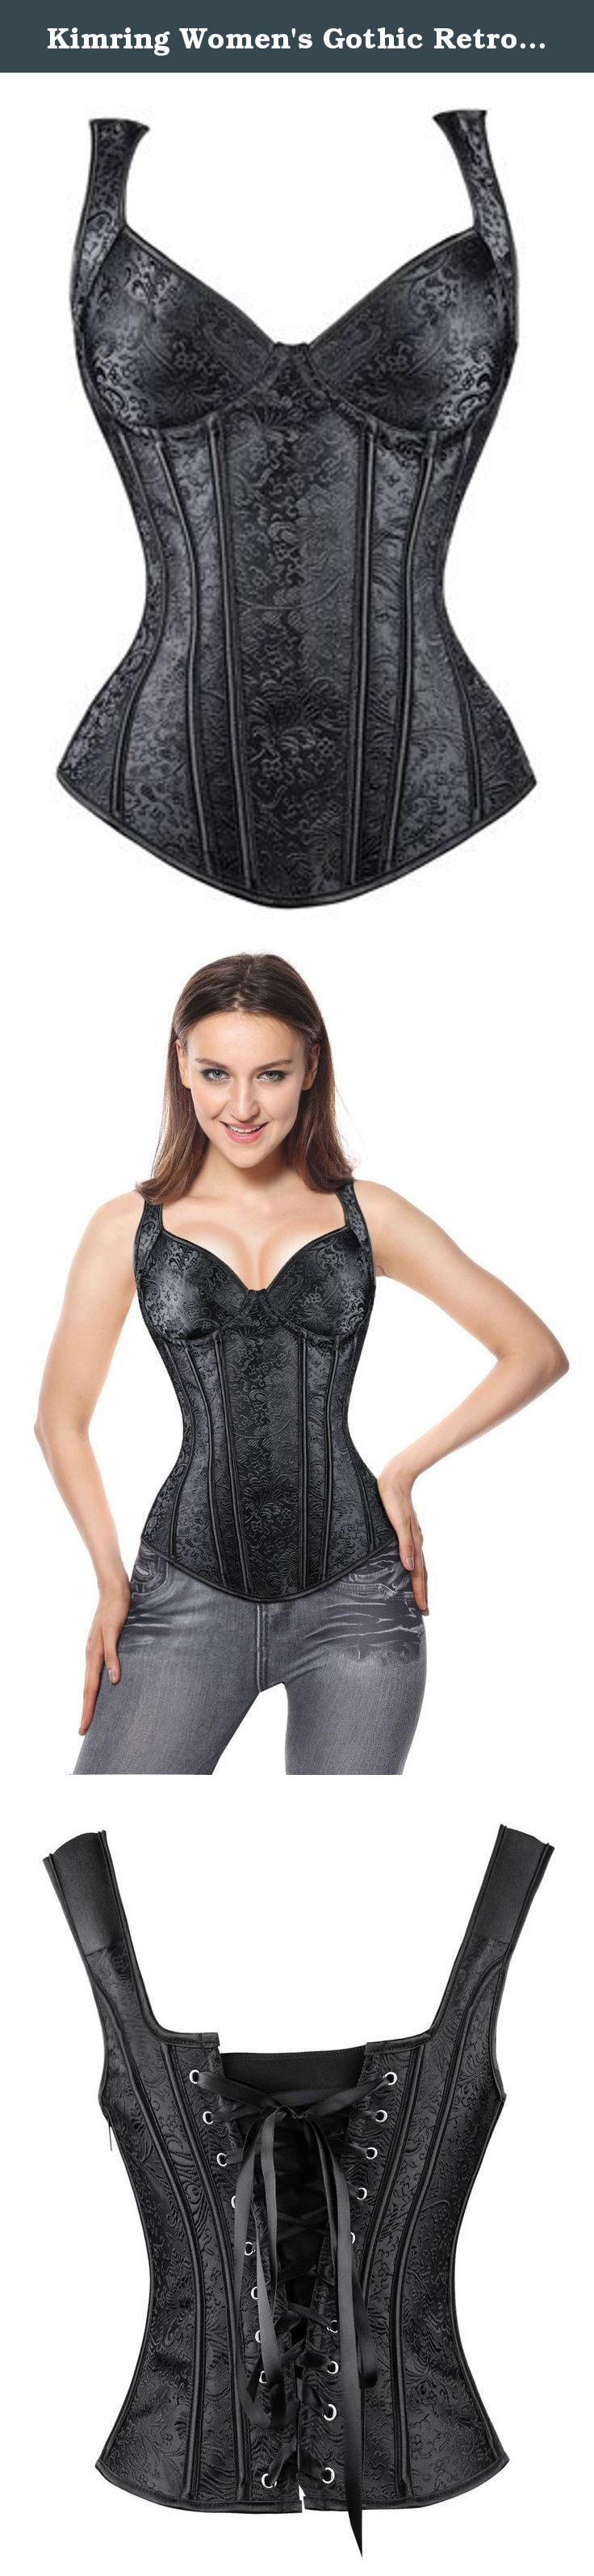 Kimring Women's Gothic Retro Jacquard Peasant Shoulder Straps Boby Shaper Tank Bustiers Overbust Corset with Lightly Cup Black Large. ATTENTION: Some Colors are Attached Plastic Bones, While the Others are Attached Spiral Steel Bones Because of Upgrade, the Sizes of each Color are a Little Different at the Same Time, Please Check in the Size Chart Details on Each Color's Left of the Pictures Vintage black jacquard overbust corset, with cotton lightly padded underwire cups, wide shoulder...